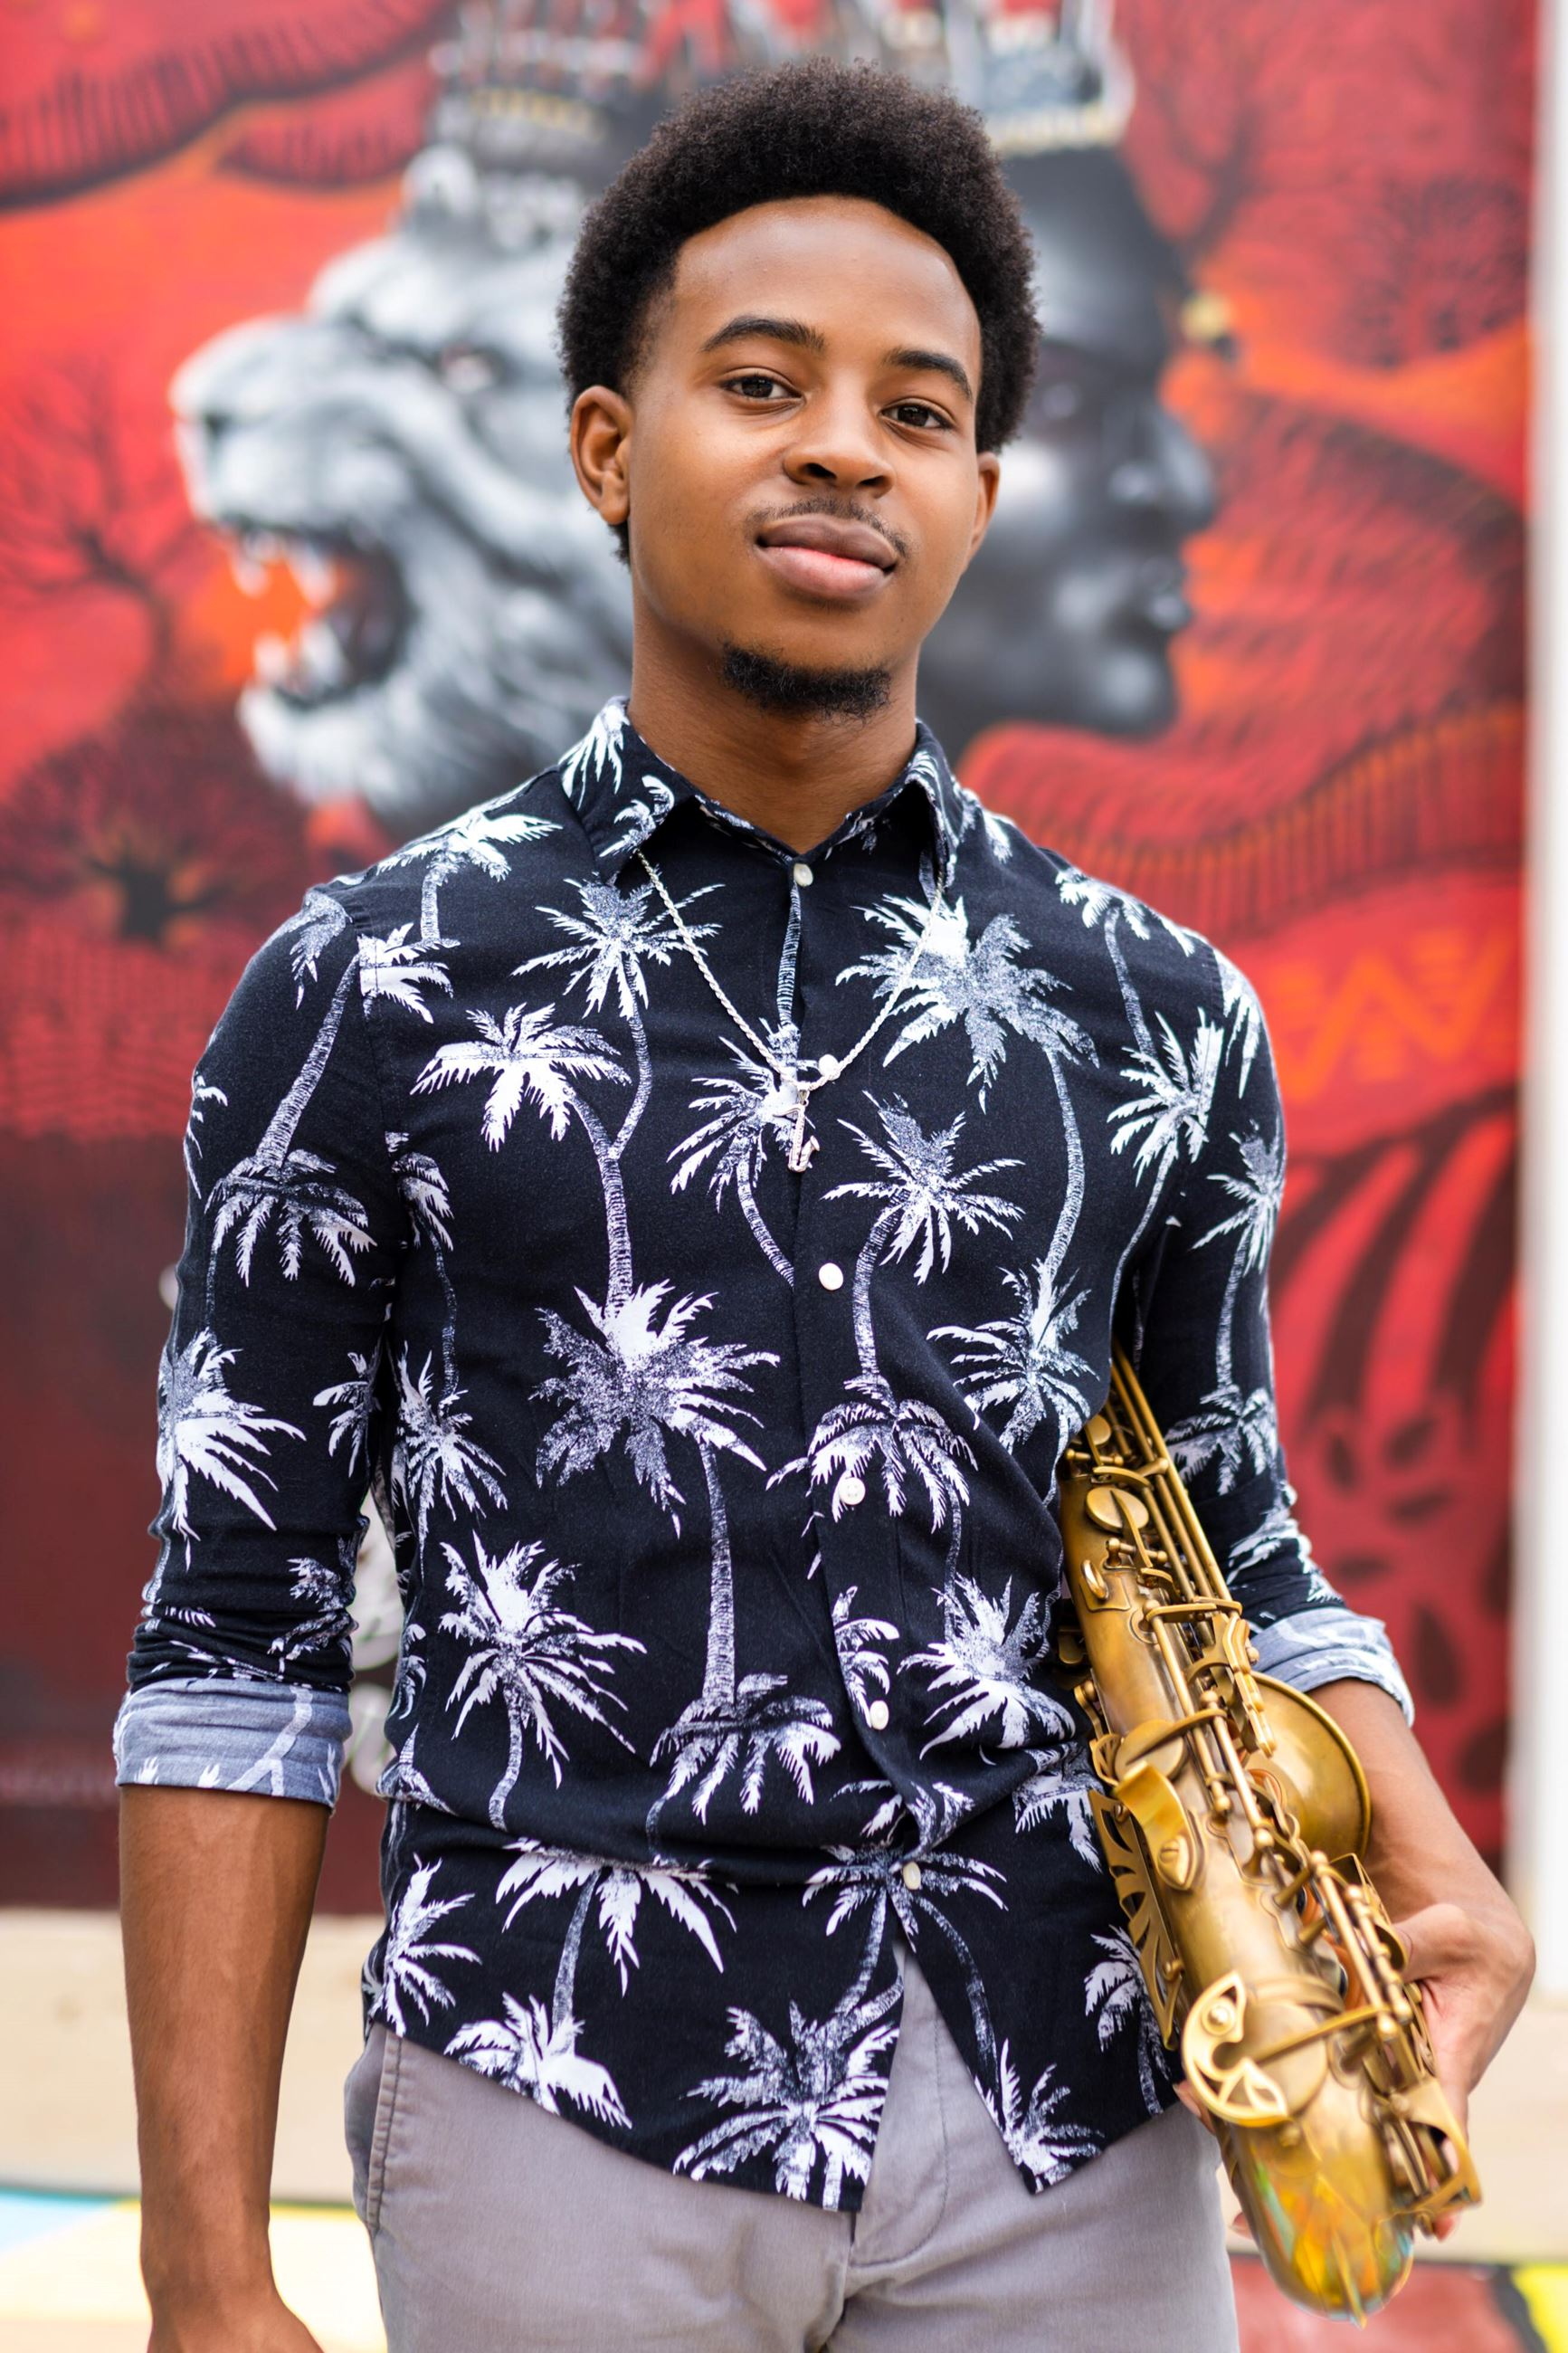 Young man holding a saxophone